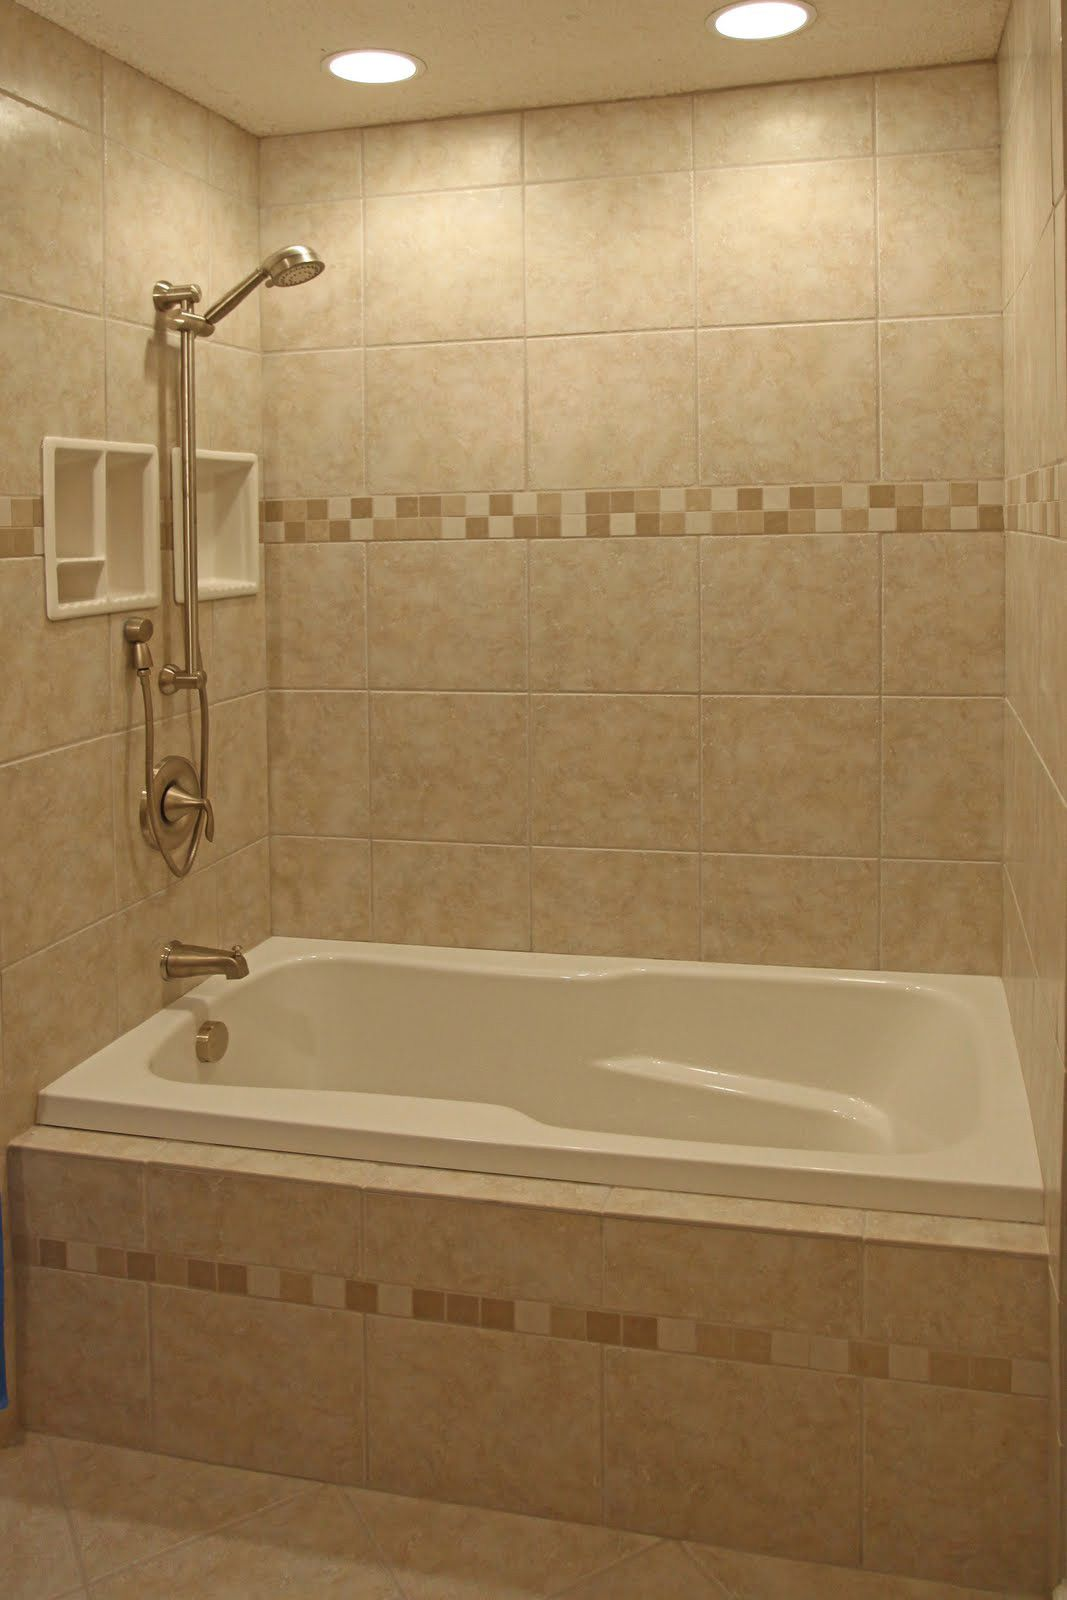 Travertine Tile Designs tile stripe could match shower floor tile. | bathroom redux